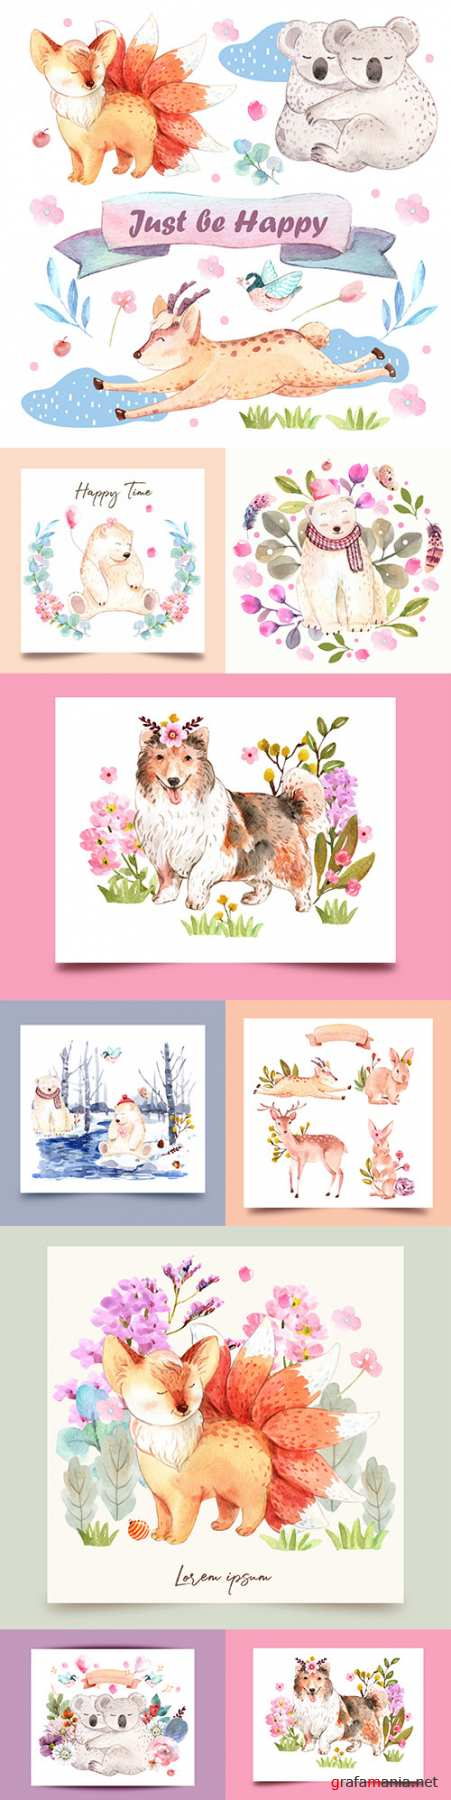 Watercolor funny animals with flowers vector design